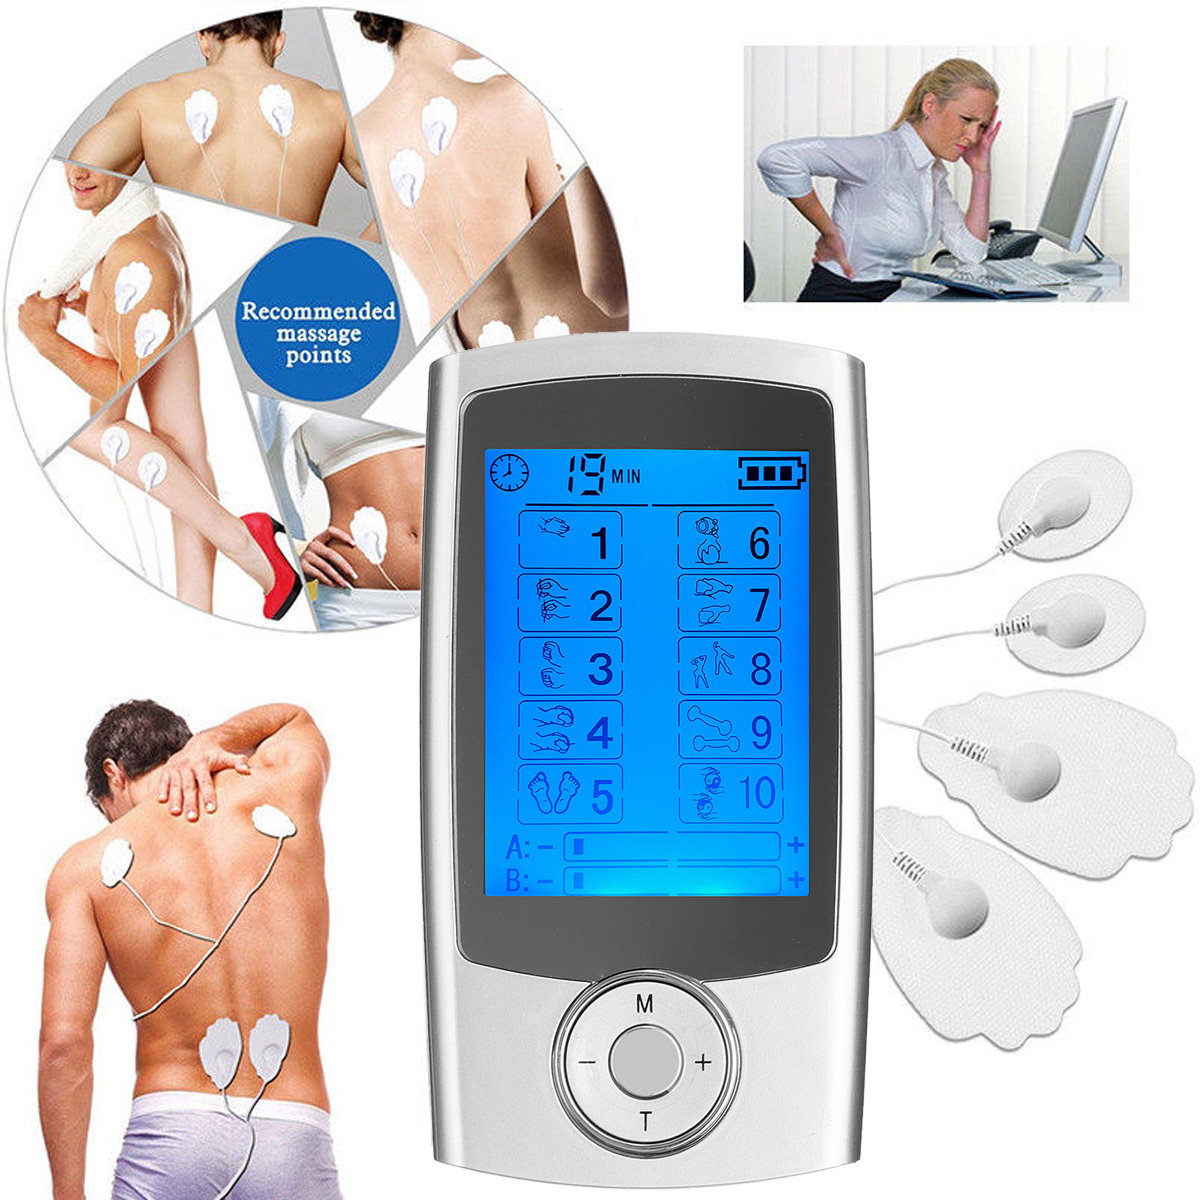 TENS Unit 10 Modes AB Electrotherapy Device Pulse